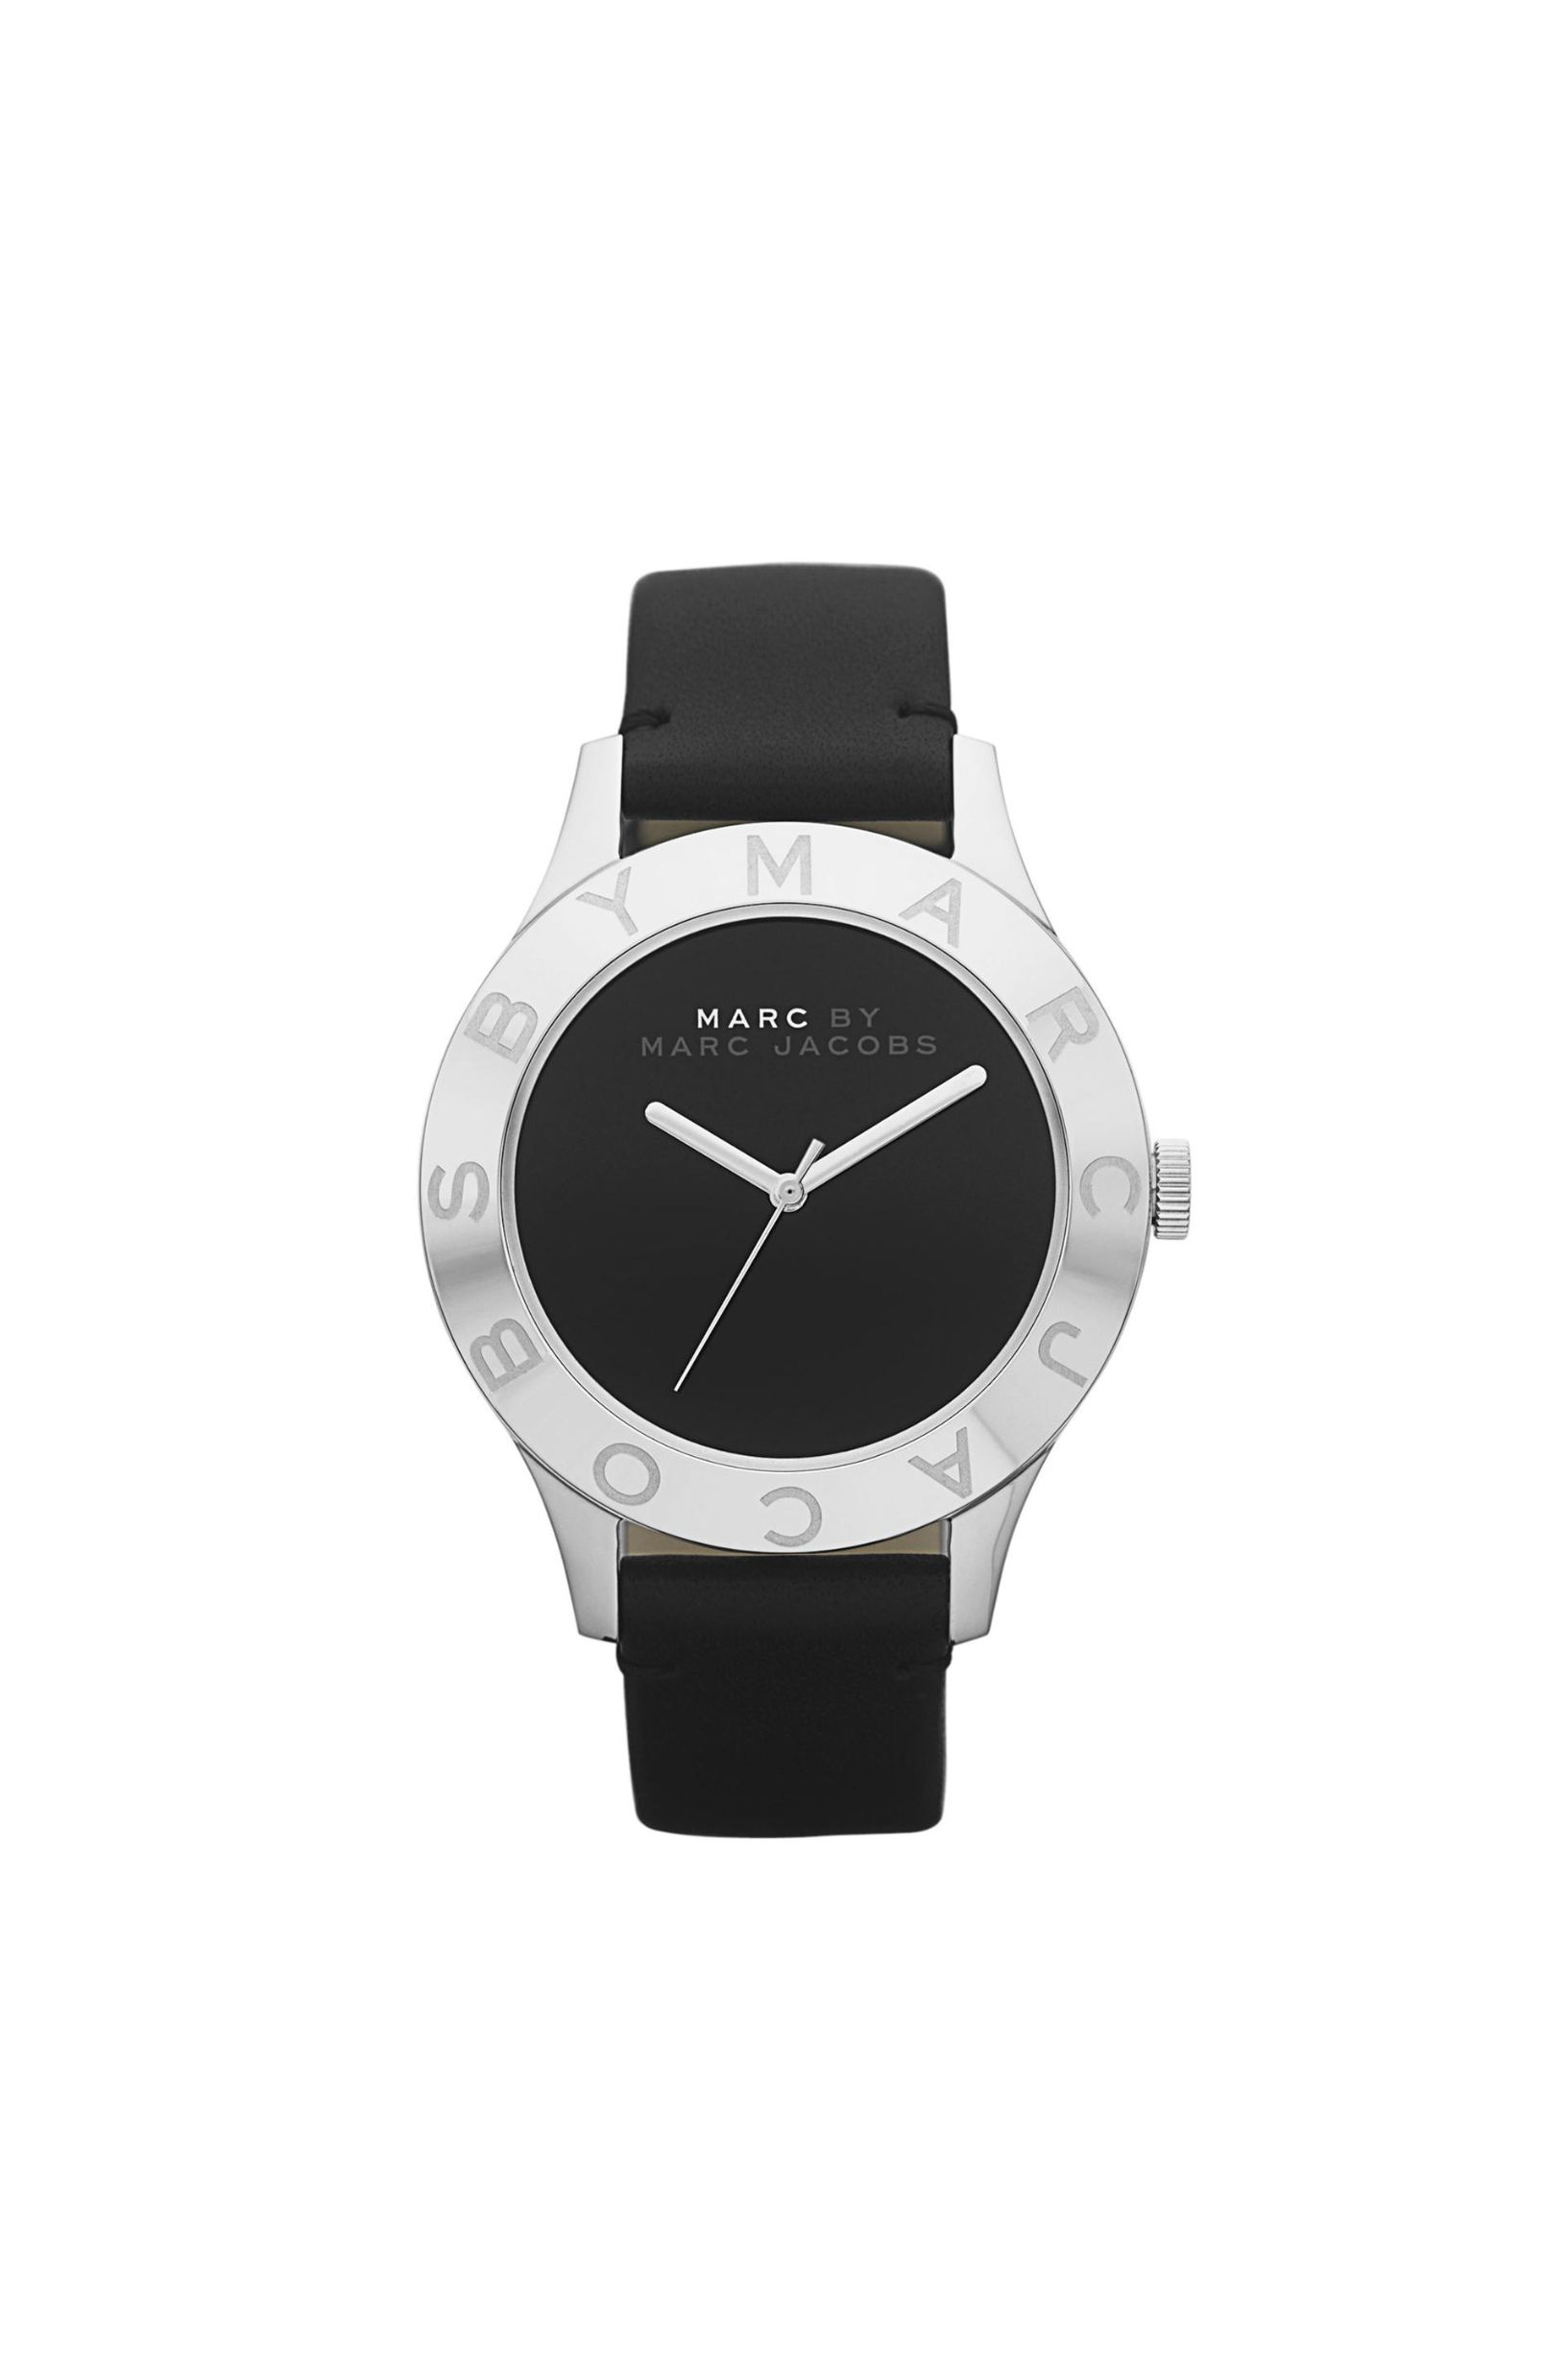 Montre Marc by Marc Jacobs - Black Patent Blade - Marc by marc jacobs ...